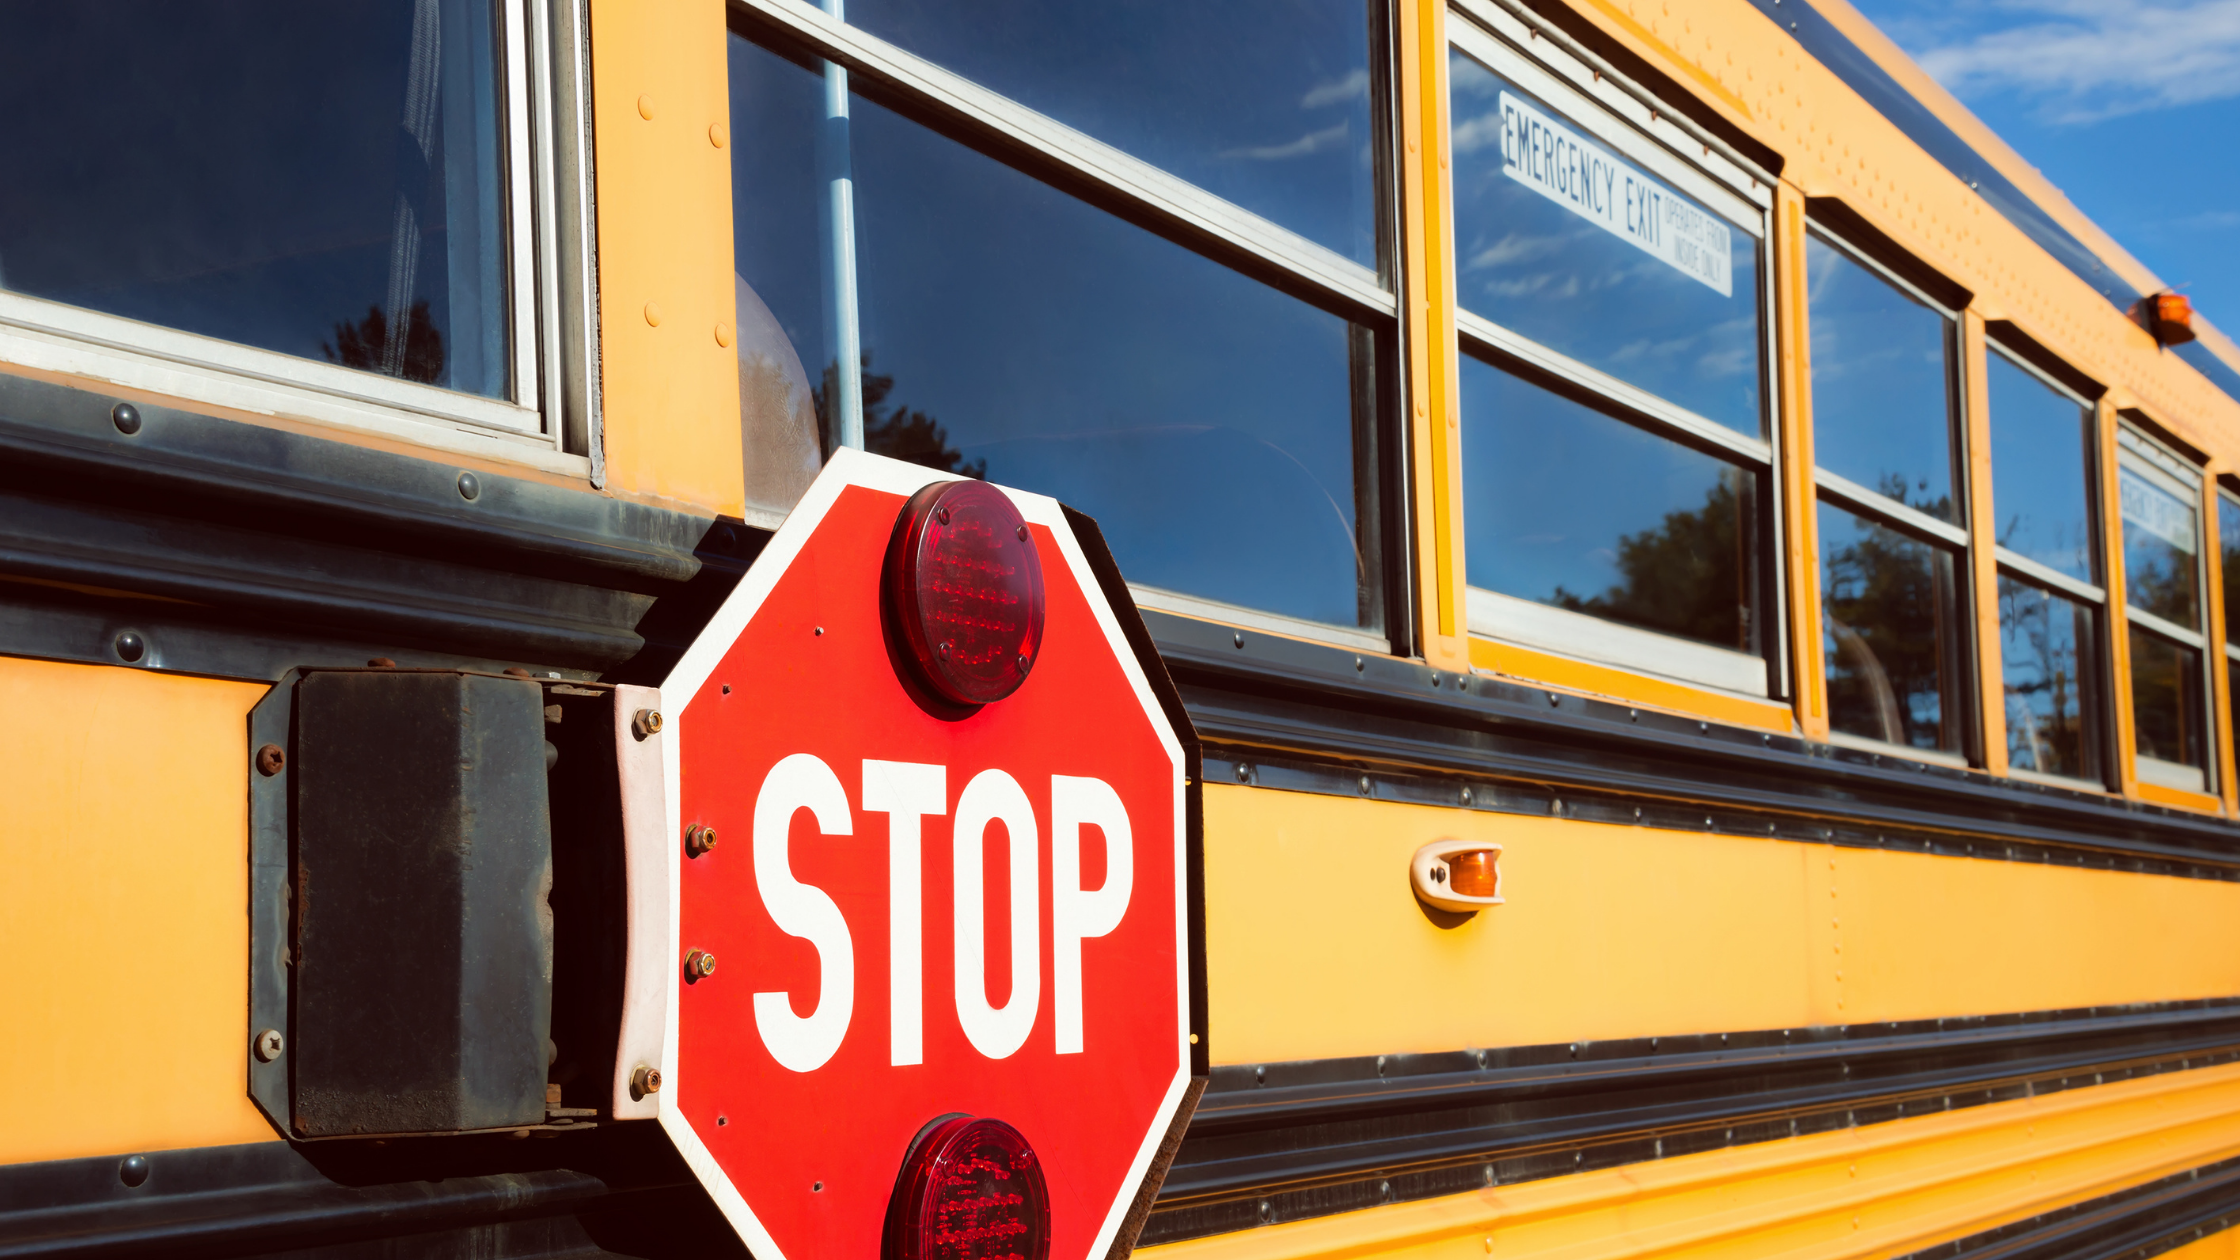 Police are investigating a motor vehicle collision involving a school bus that occurred in Bedford | haligonia.ca